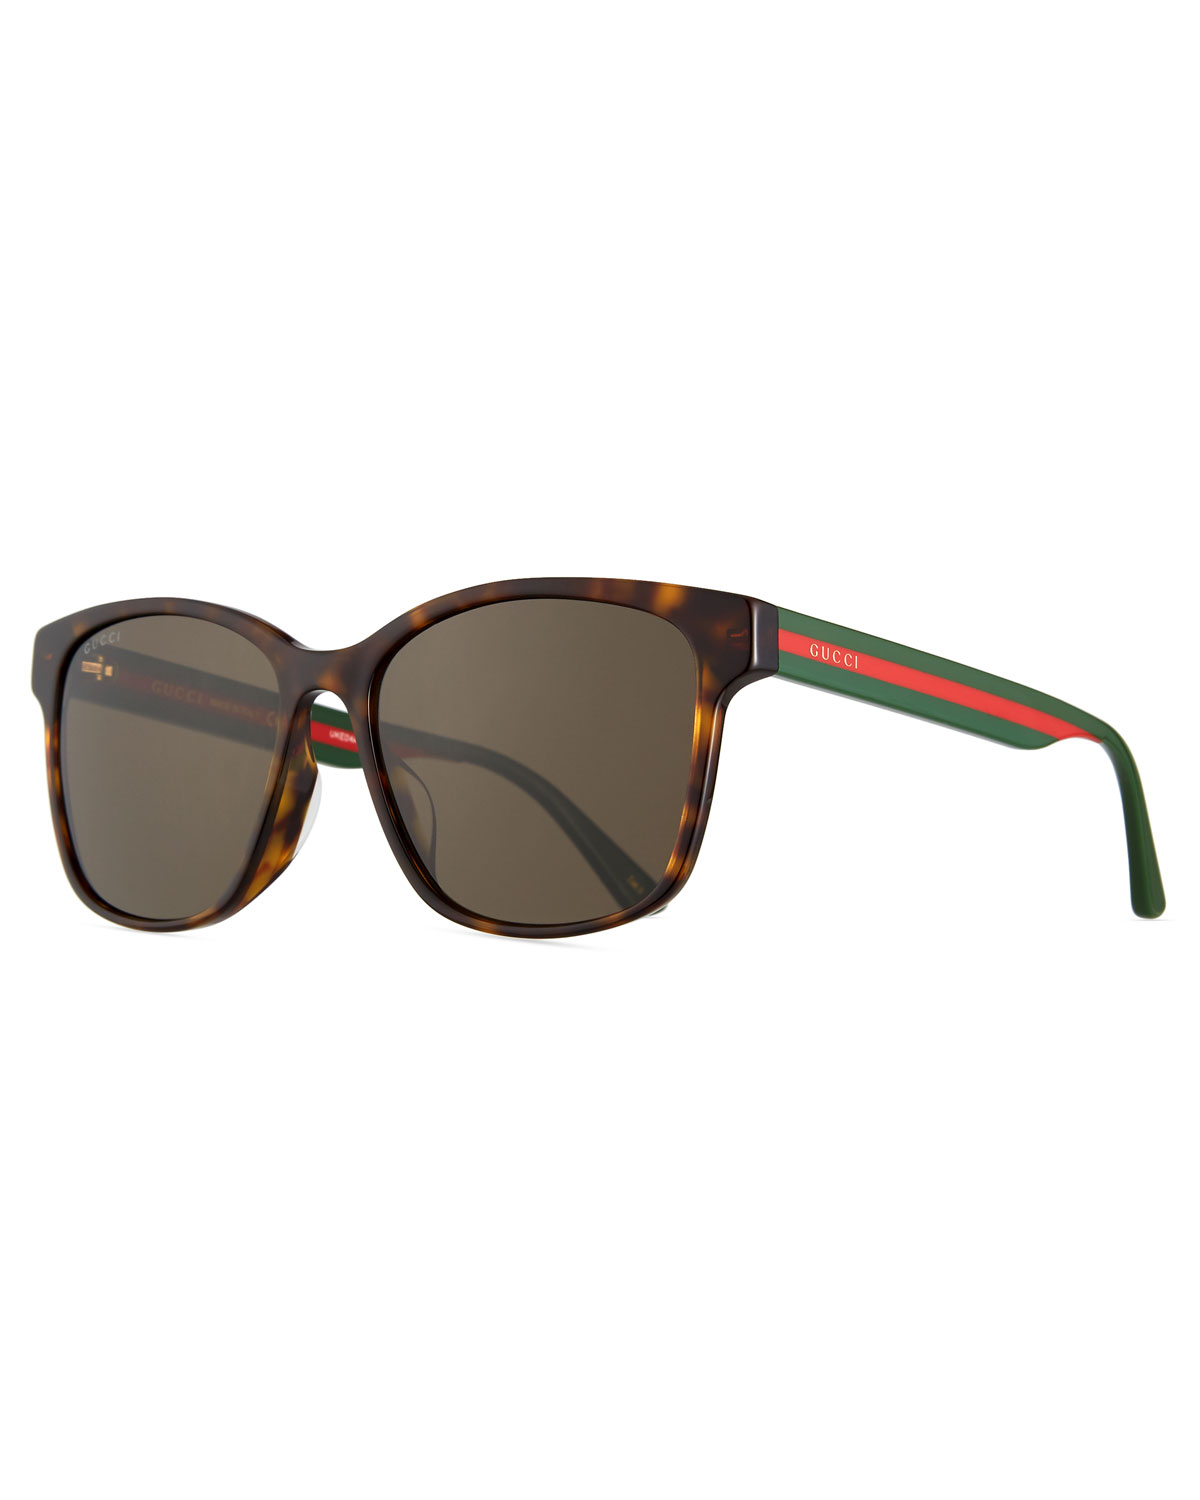 9f989a993f5 Gucci Men s Square Tortoise Acetate Sunglasses with Signature Web ...